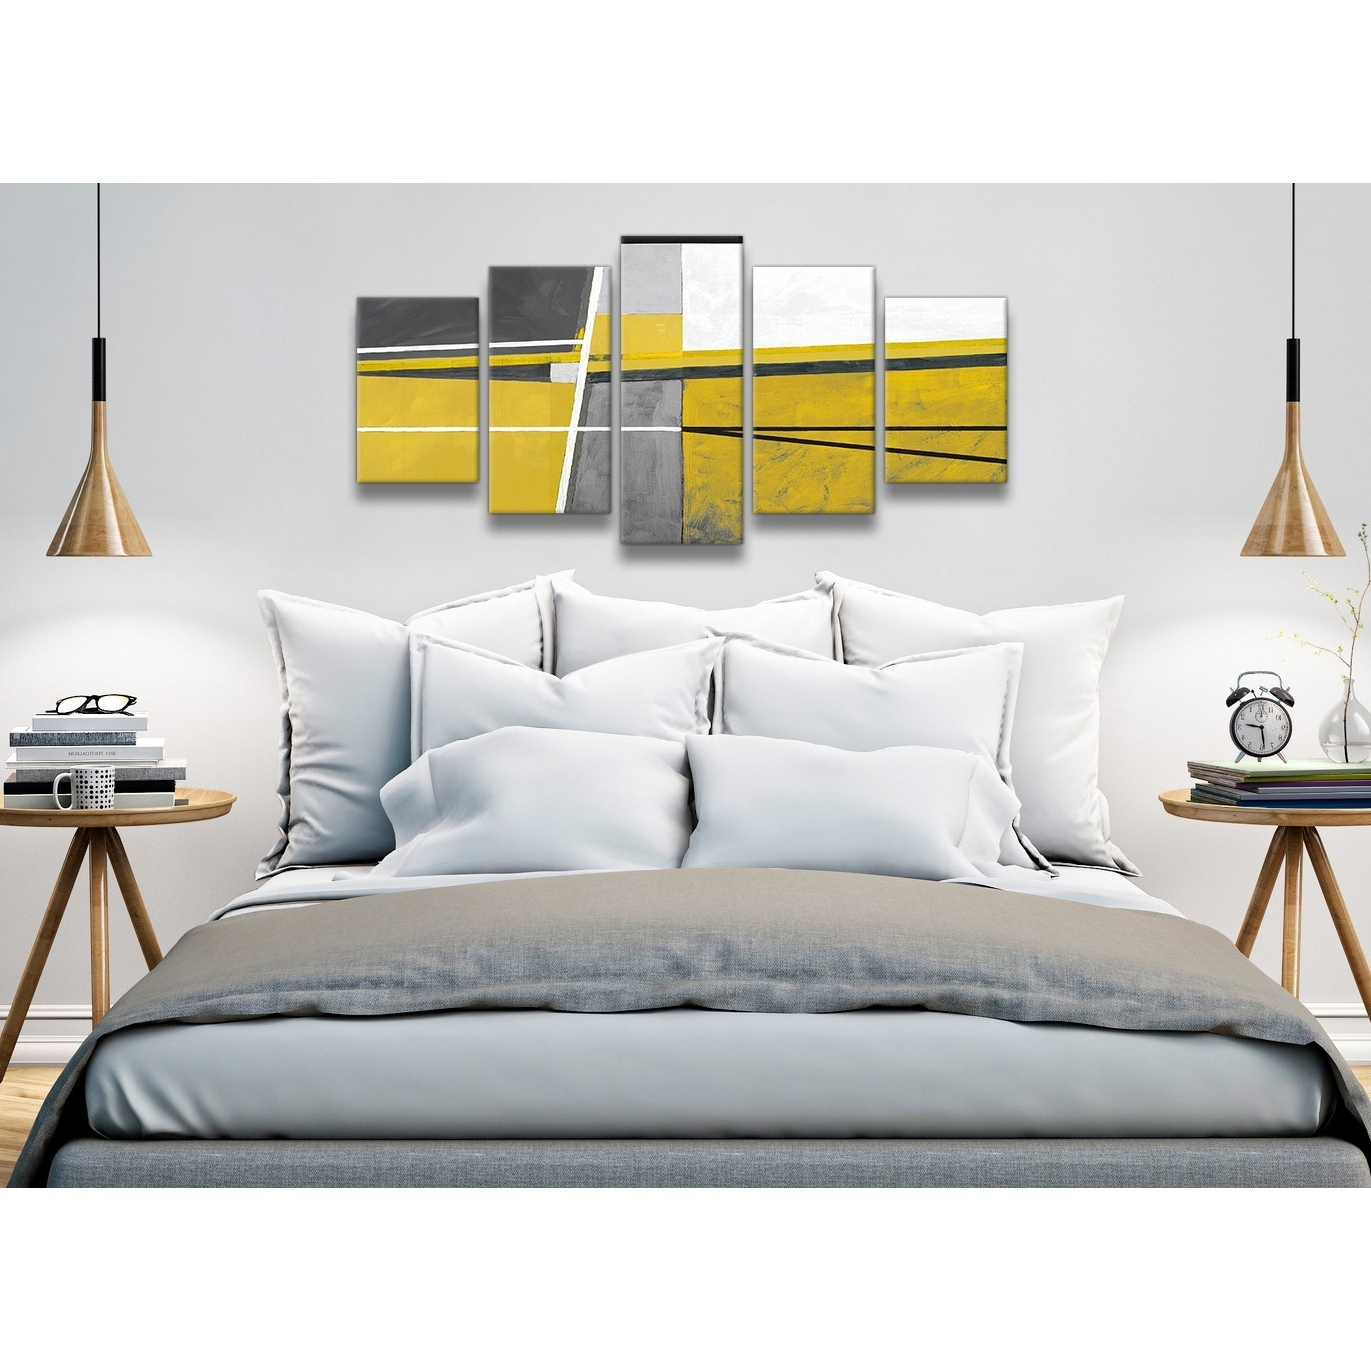 Wall Art For Bedroom Regarding Widely Used 5 Panel Mustard Yellow Grey Painting Abstract Bedroom Canvas (View 13 of 15)